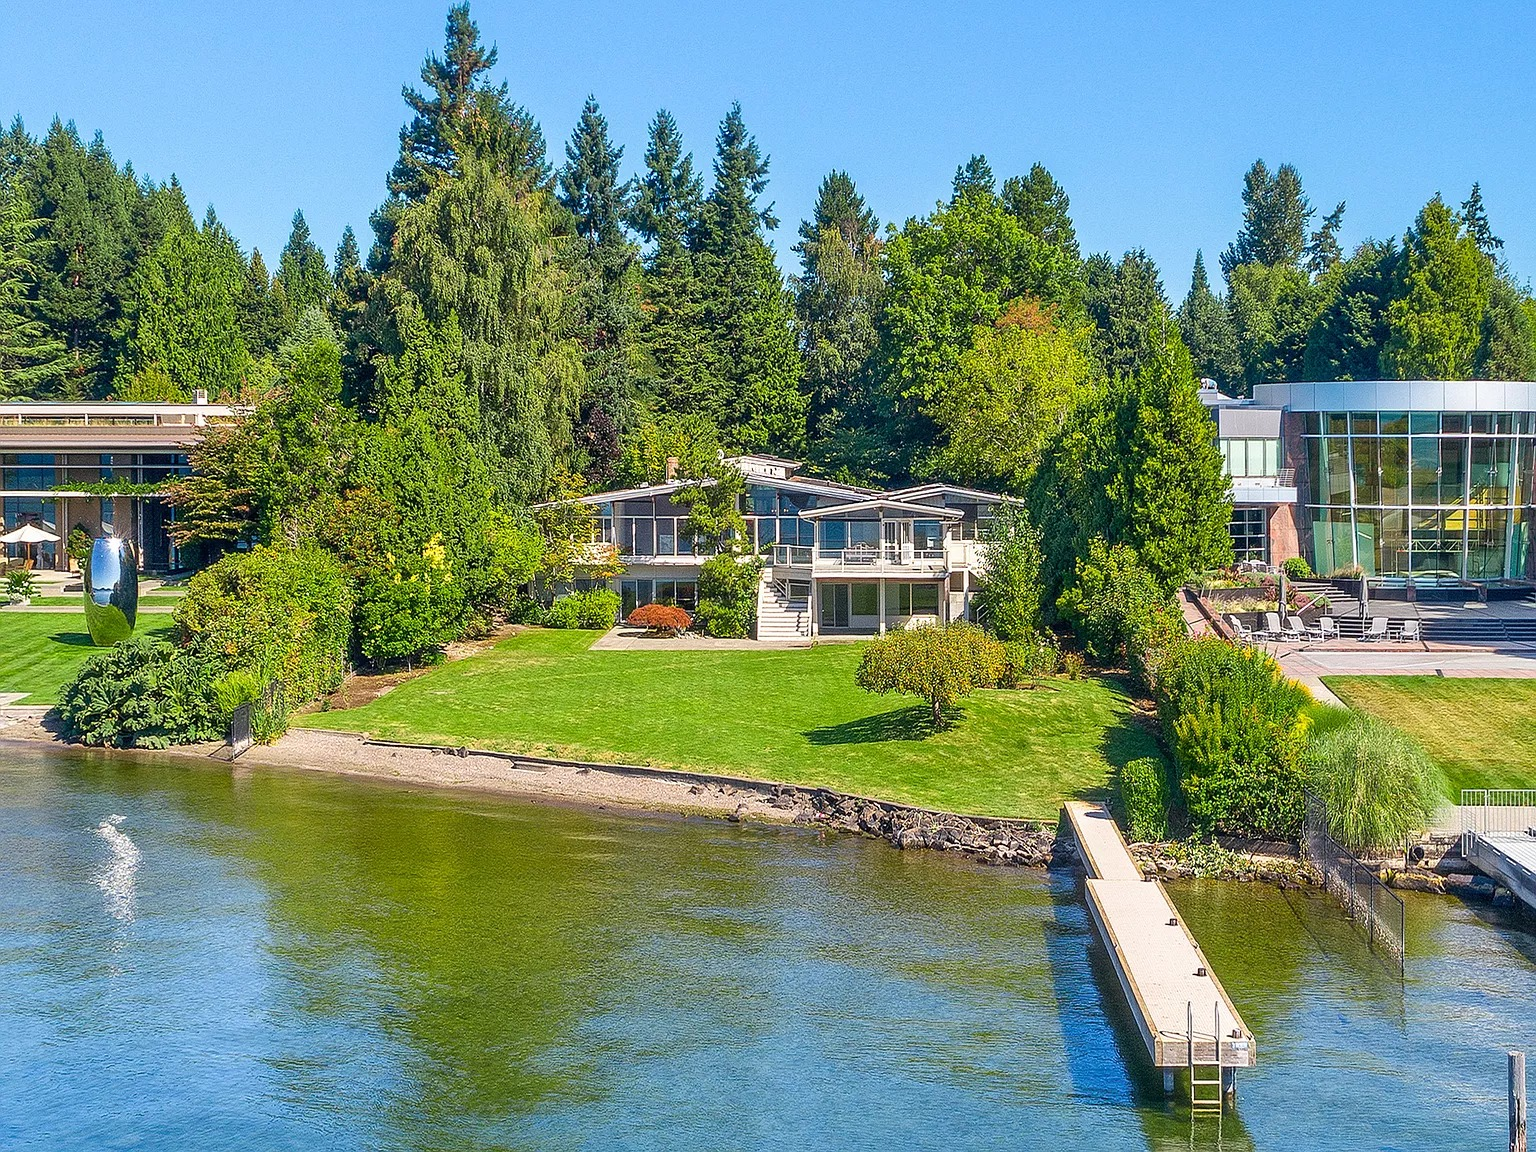 7935 Overlake Dr W, Medina, WA 98039 - $20,000,000 home for sale, house images, photos and pics gallery